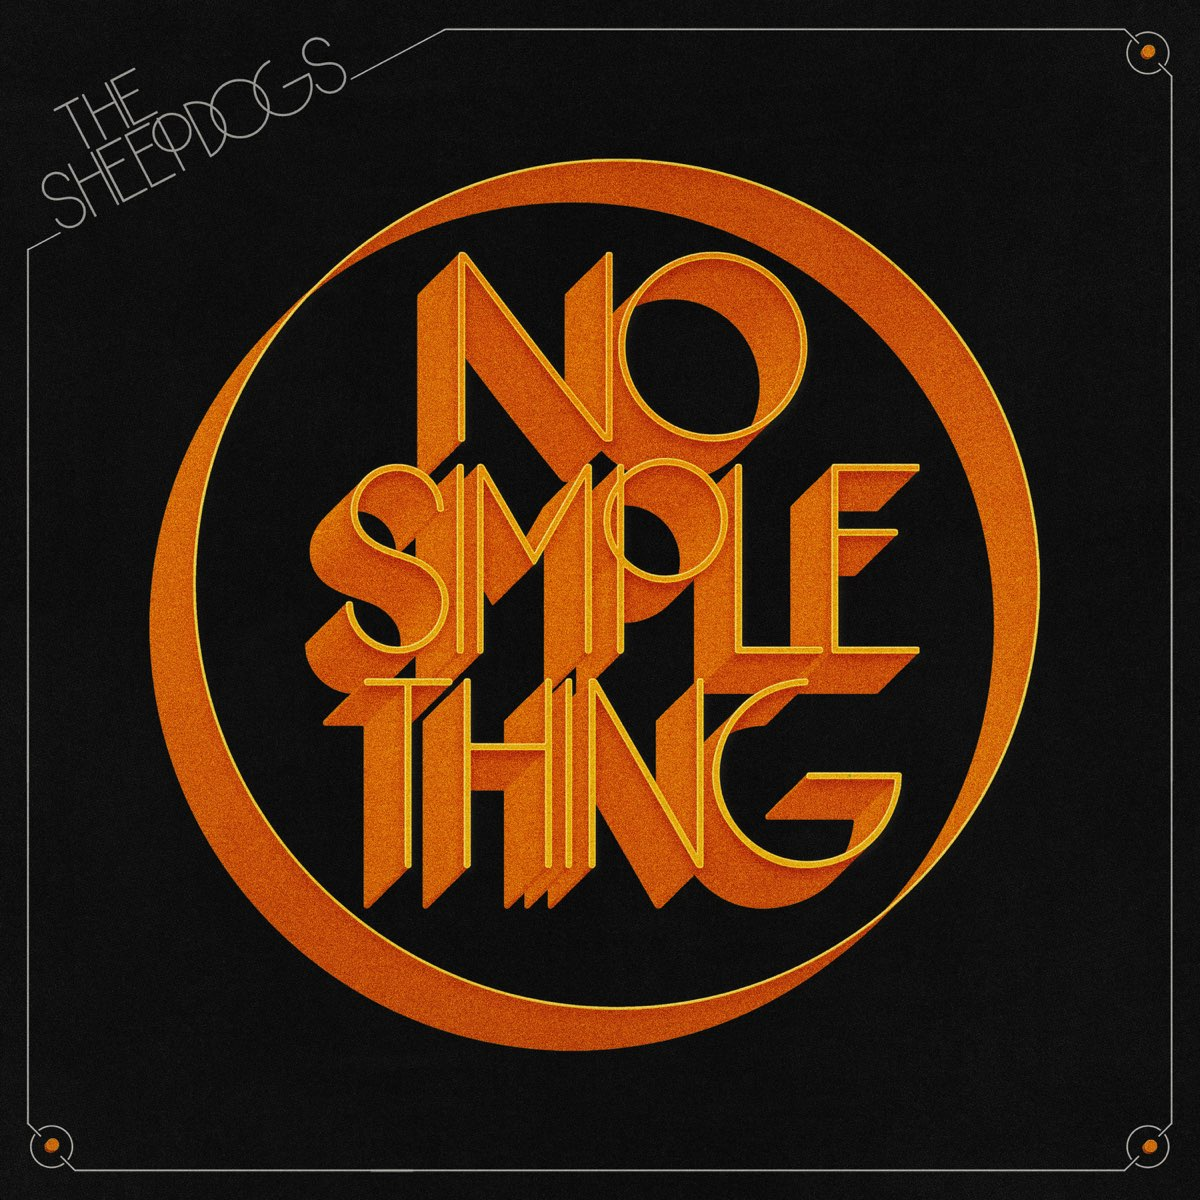 """The Sheepdogs 2021 Album """"No Simple Thing"""" cover art"""